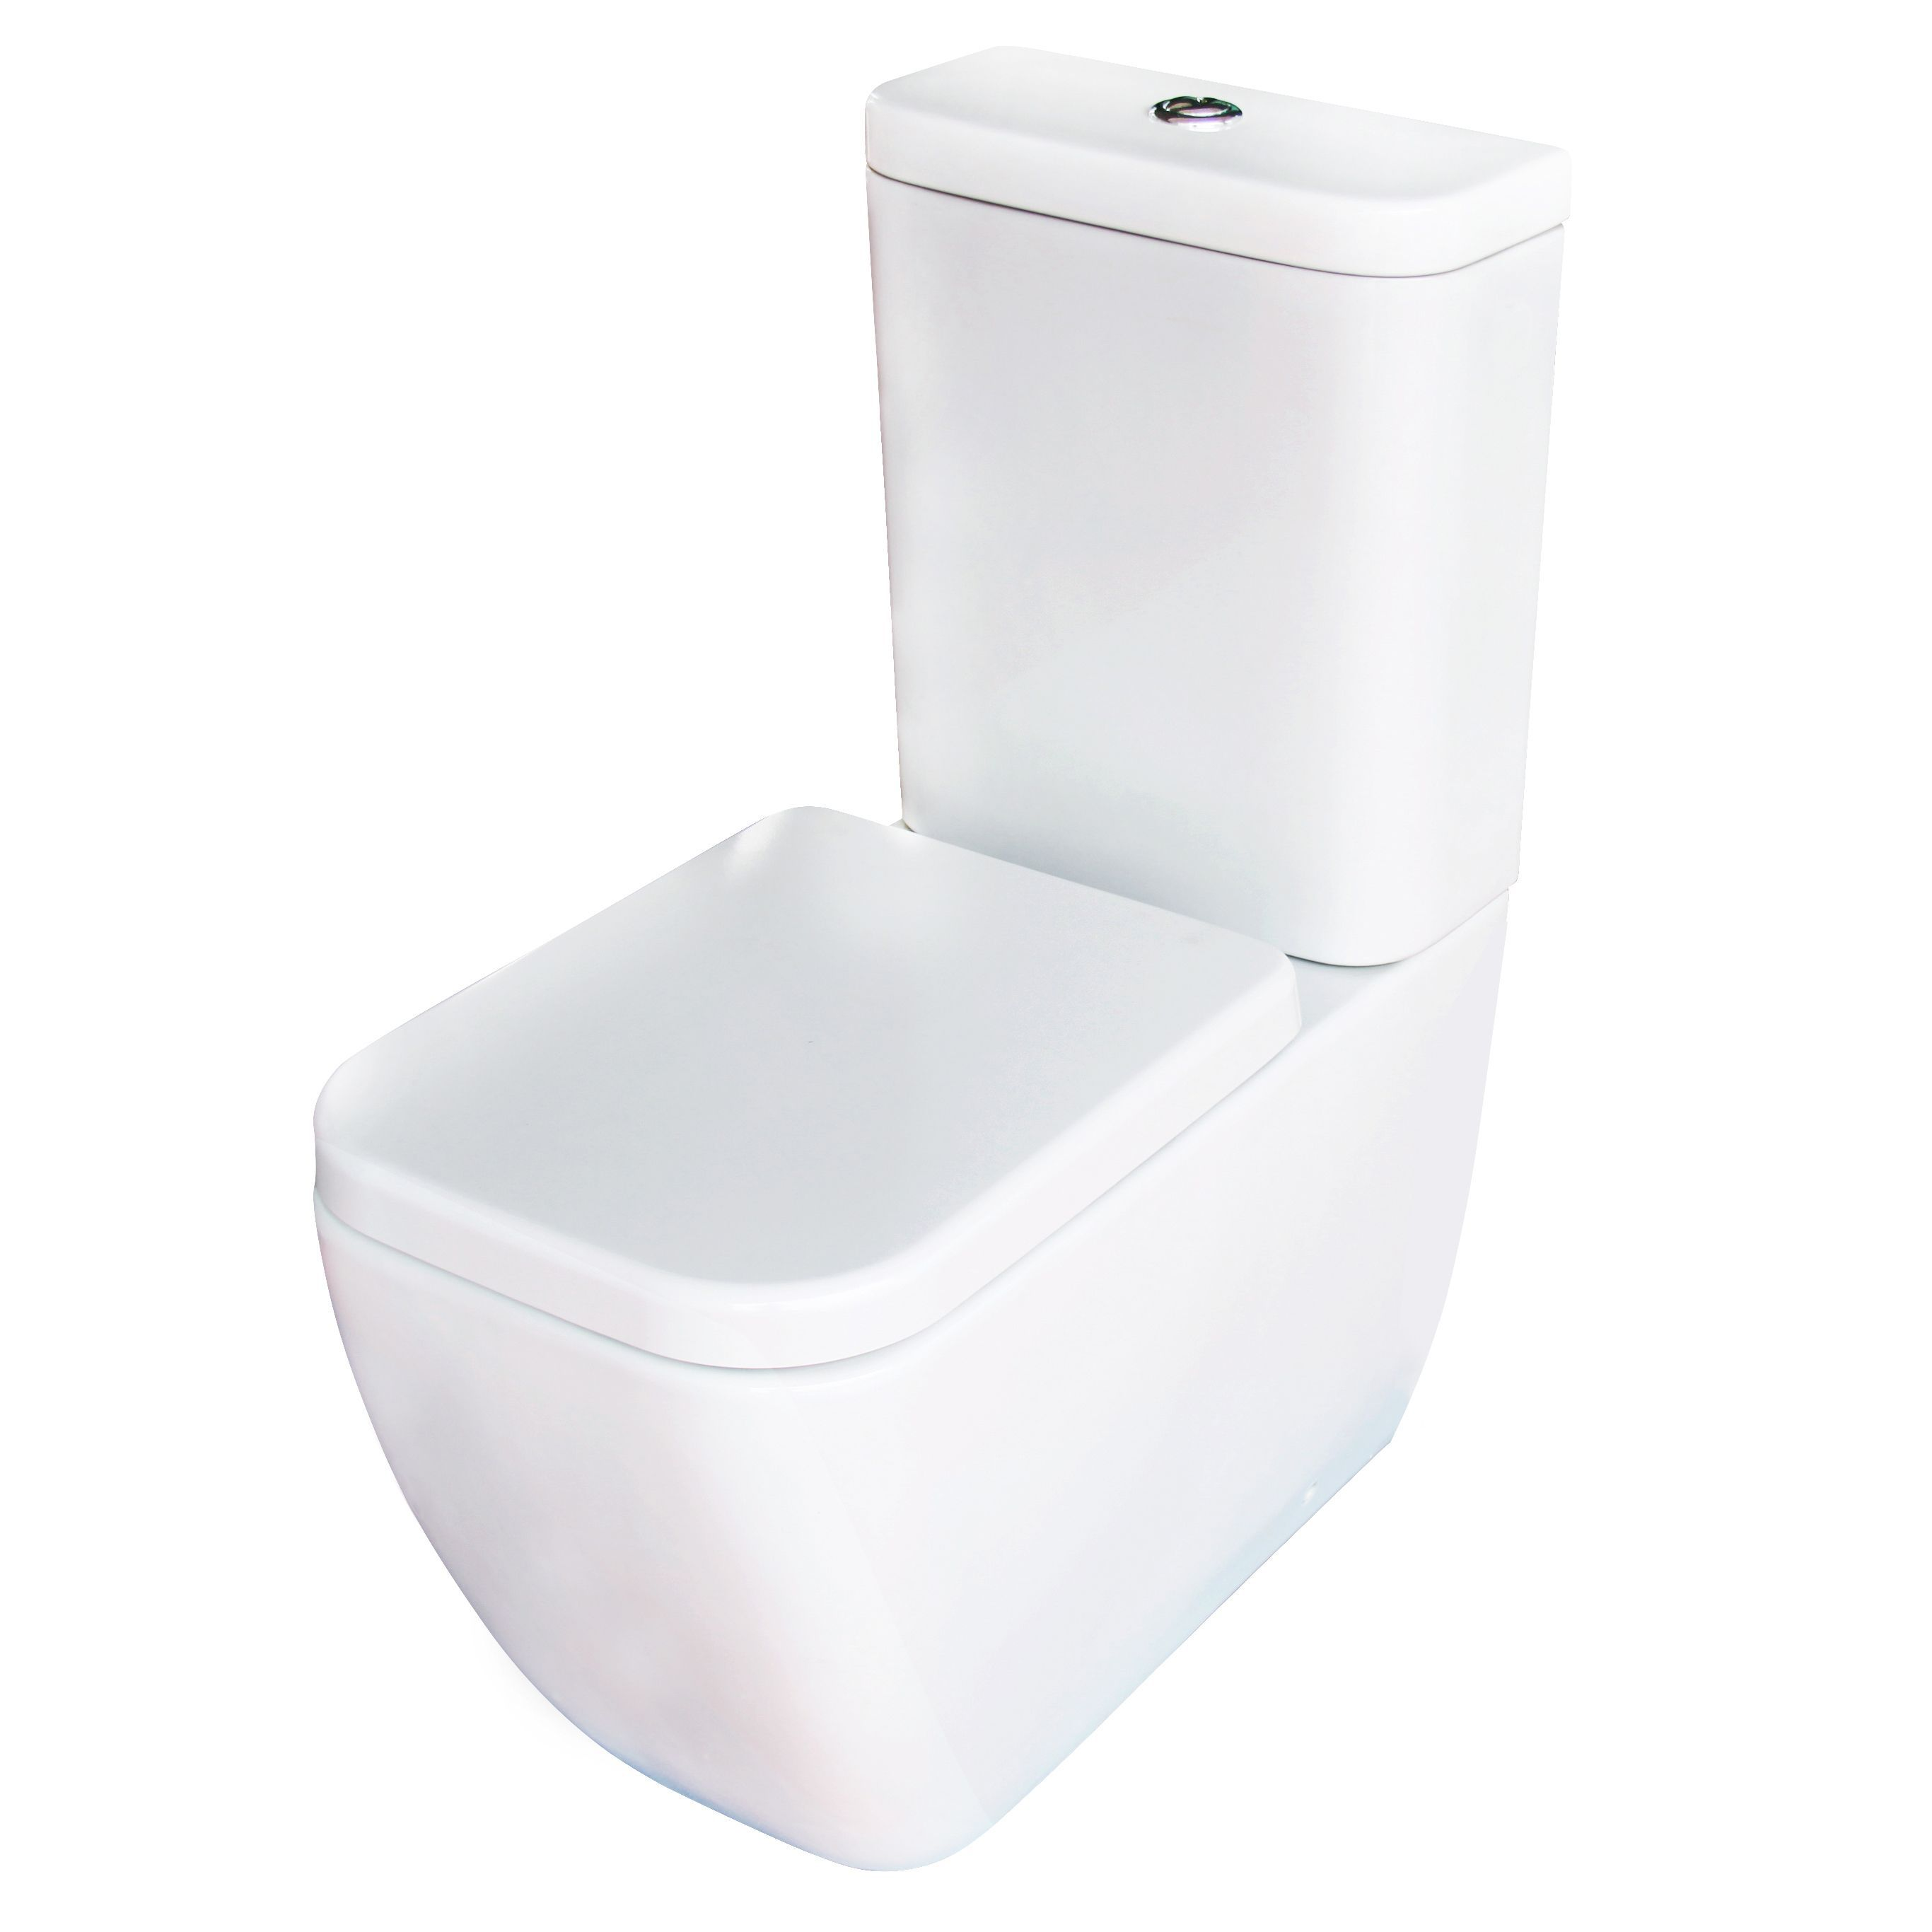 cooke  lewis affini contemporary closecoupled toilet with soft  - cooke  lewis affini contemporary closecoupled toilet with soft close seat departments  diy at bq